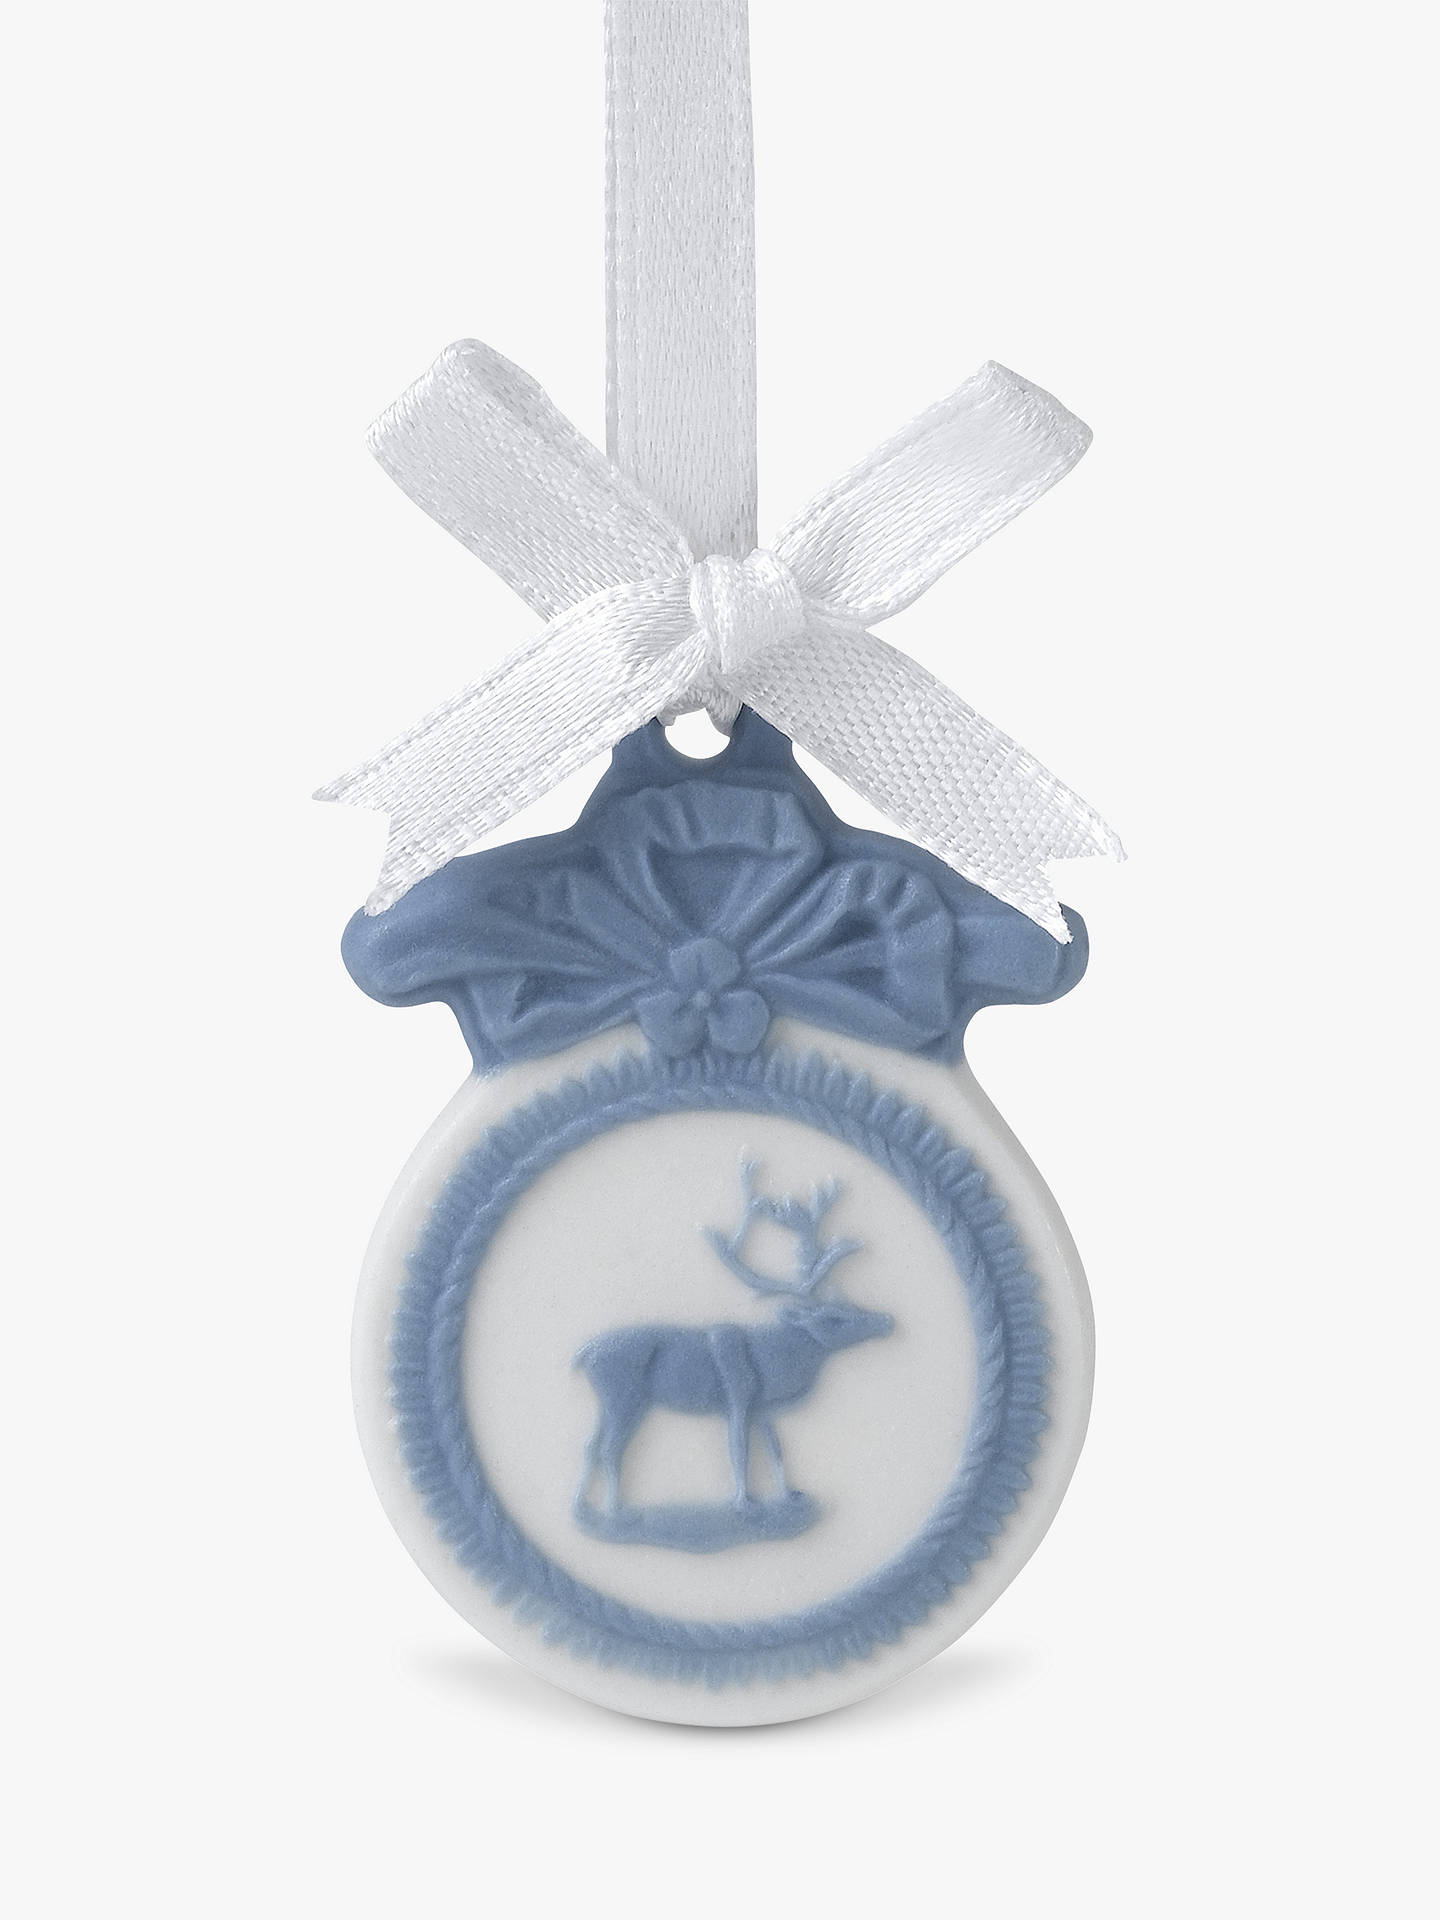 Buy Wedgwood Magical Christmas Porcelain Ornaments Advent Calendar 2020, 24 Piece Online at johnlewis.com